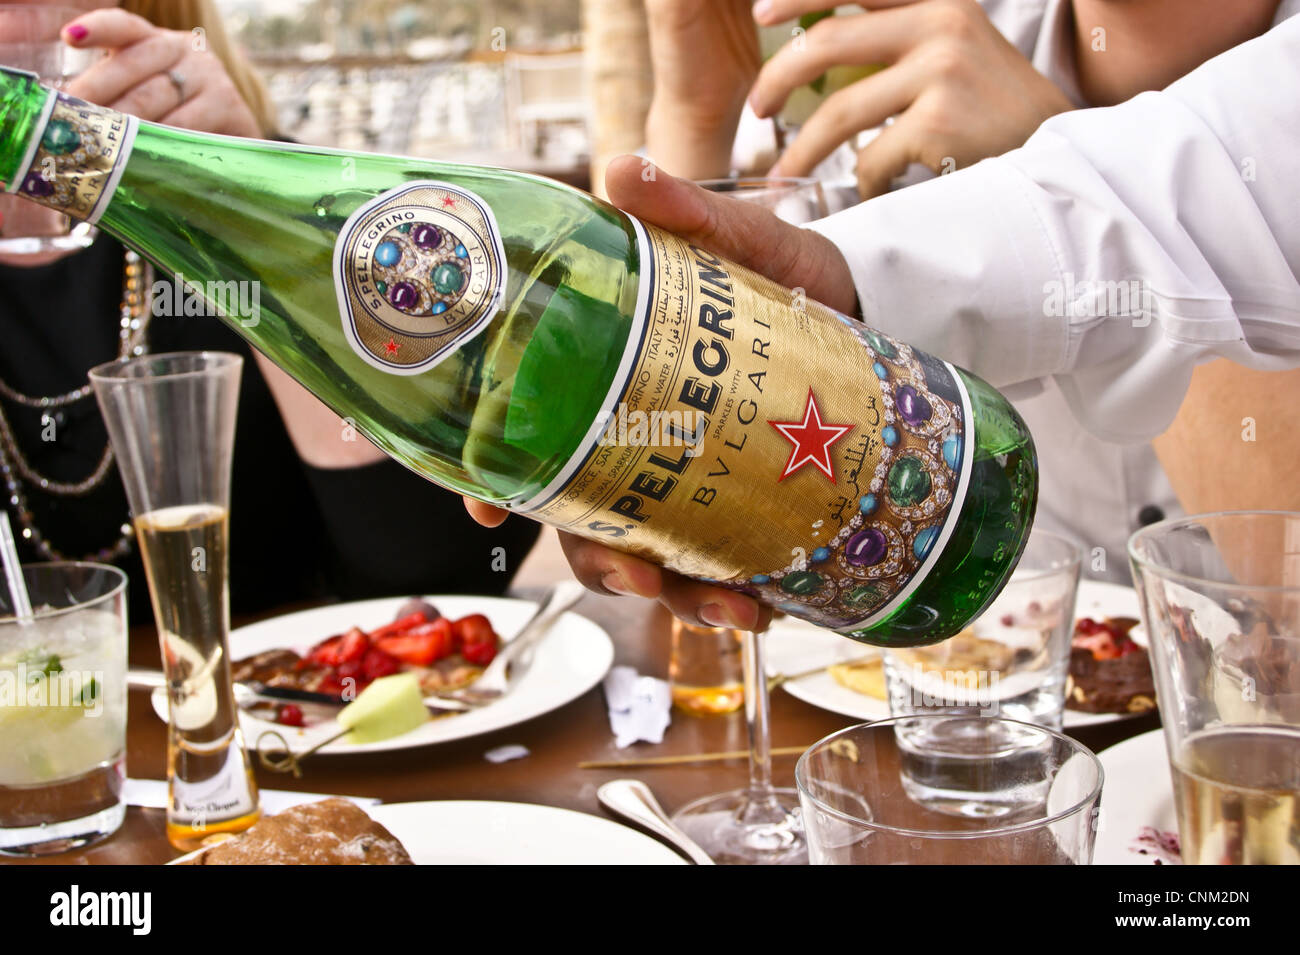 a-bulgari-branded-bottle-of-san-pellegri